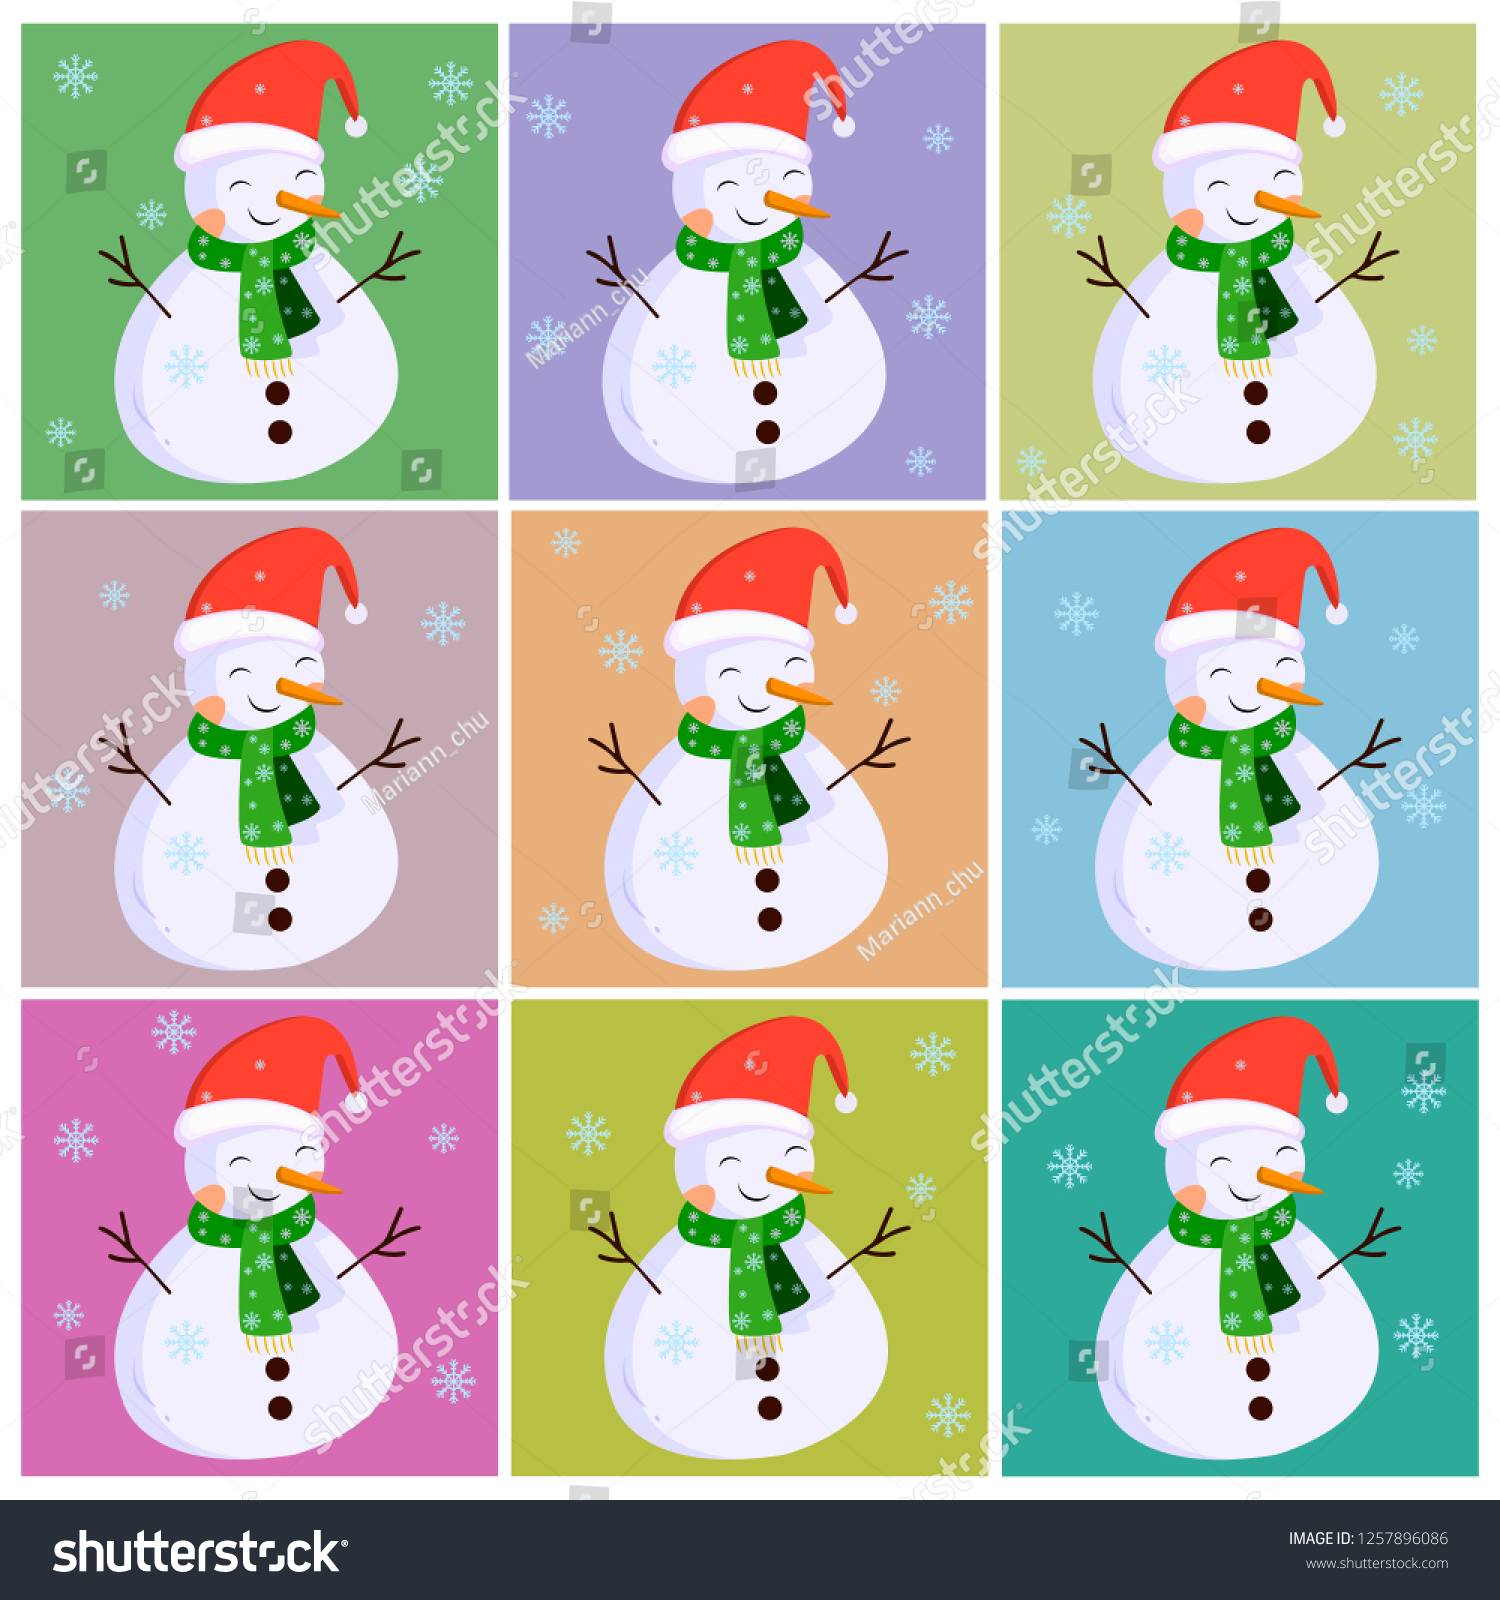 Snowmen Collection On Colorful Backgrounds Snowman Stock Vector 1500x1600